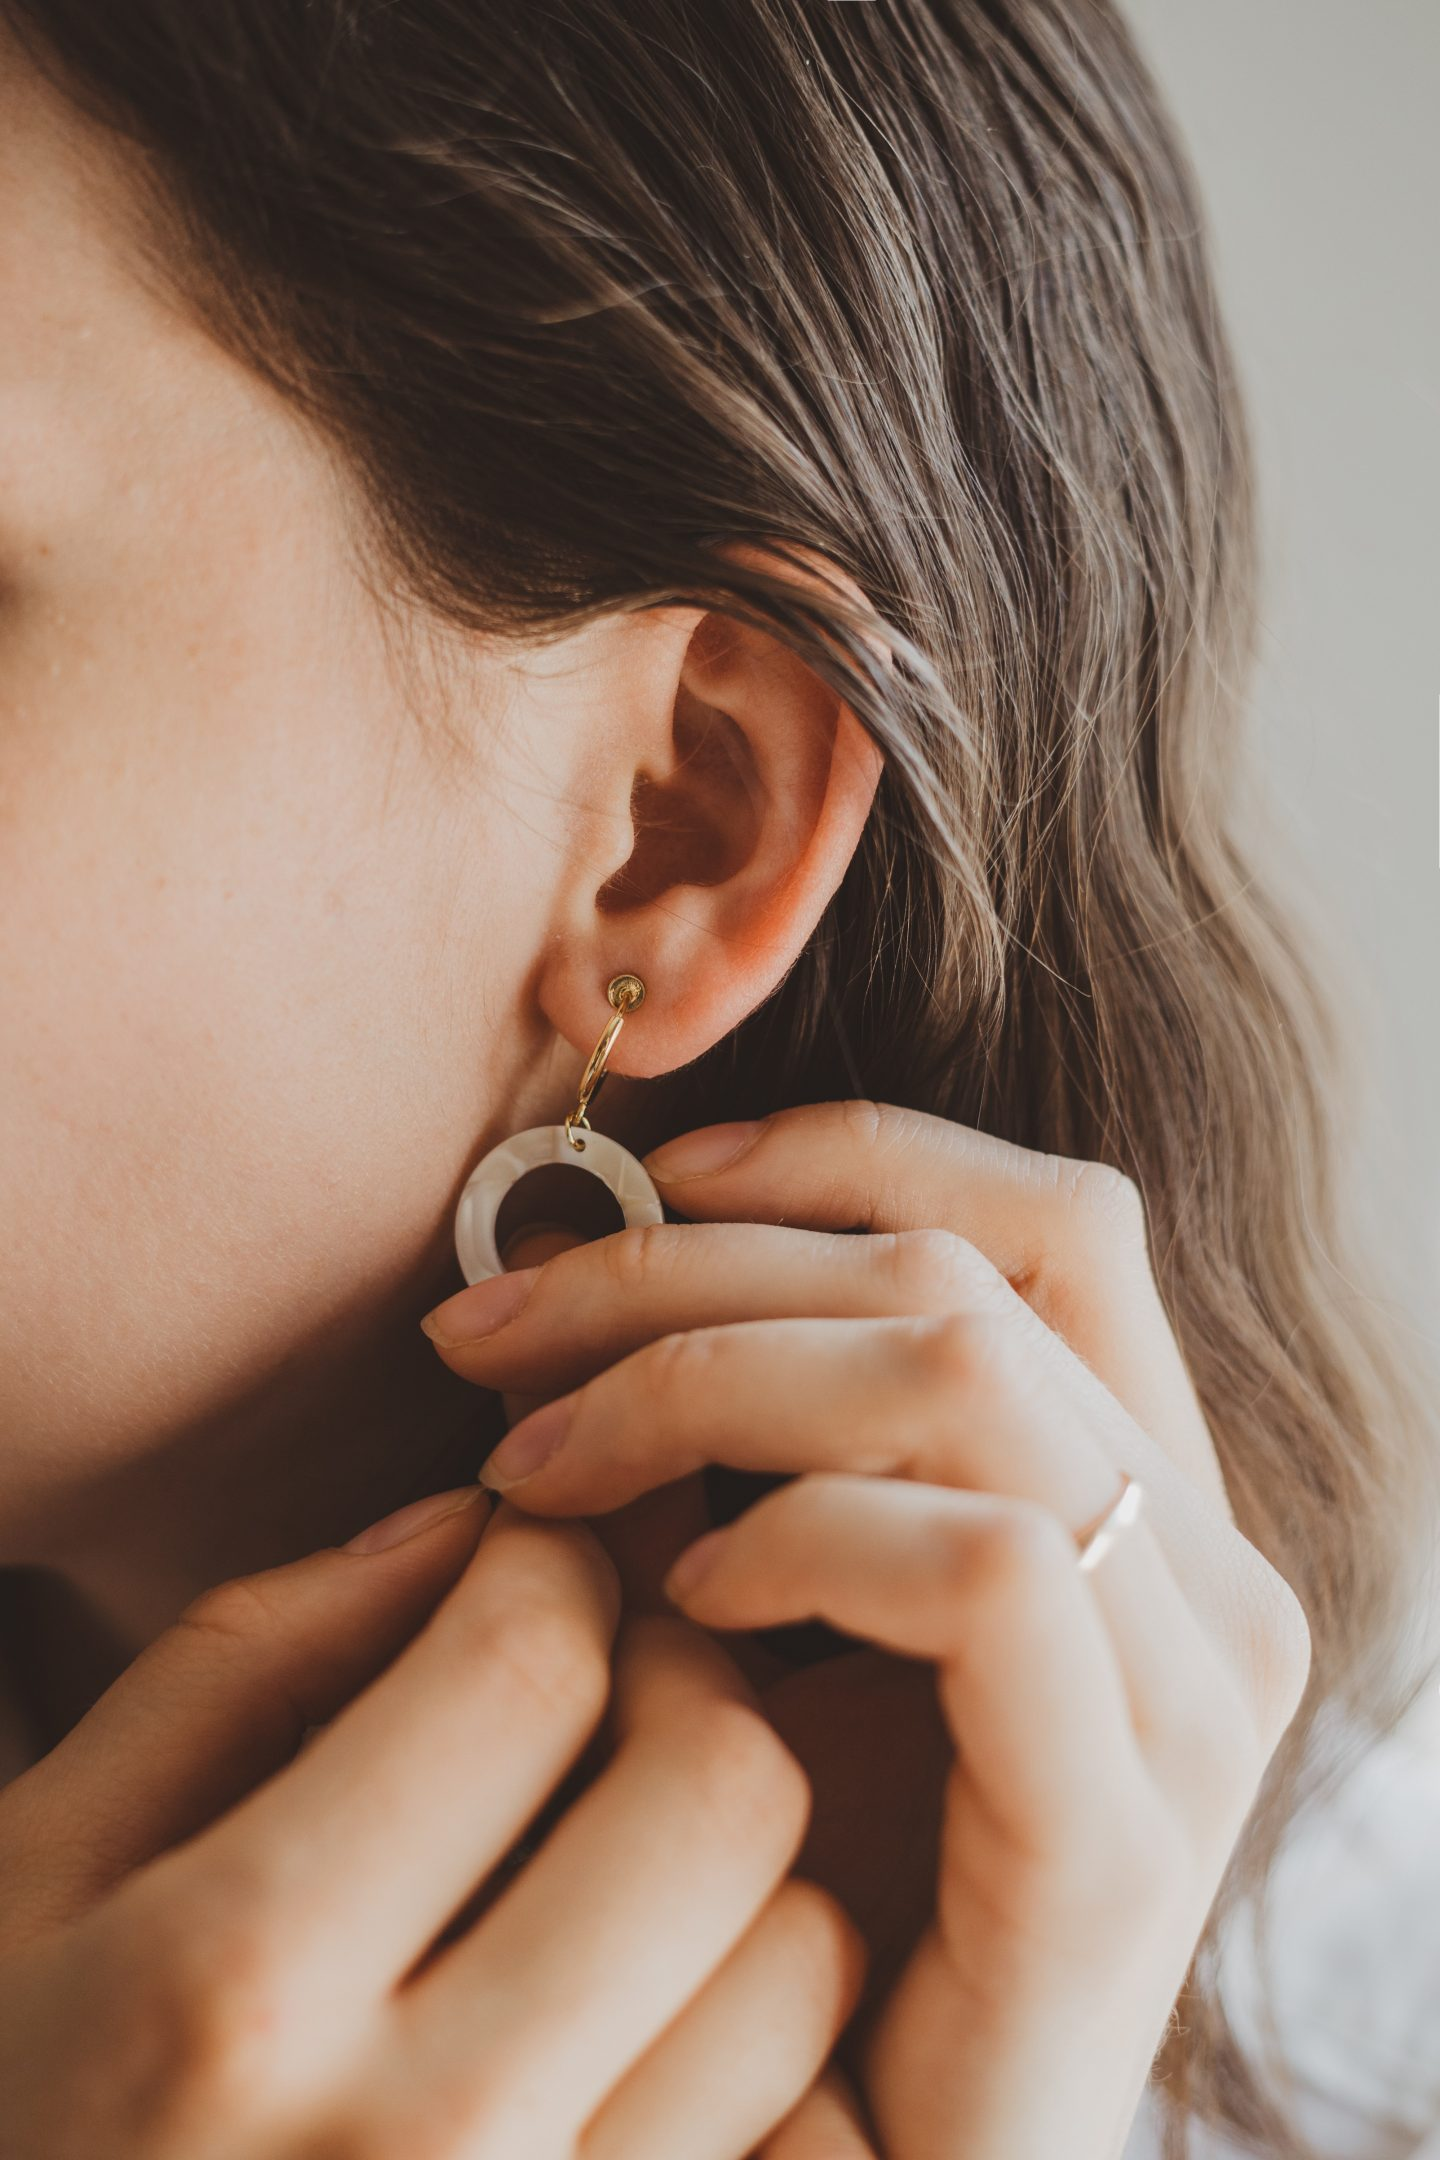 Ethical jewelry brands you need to know about